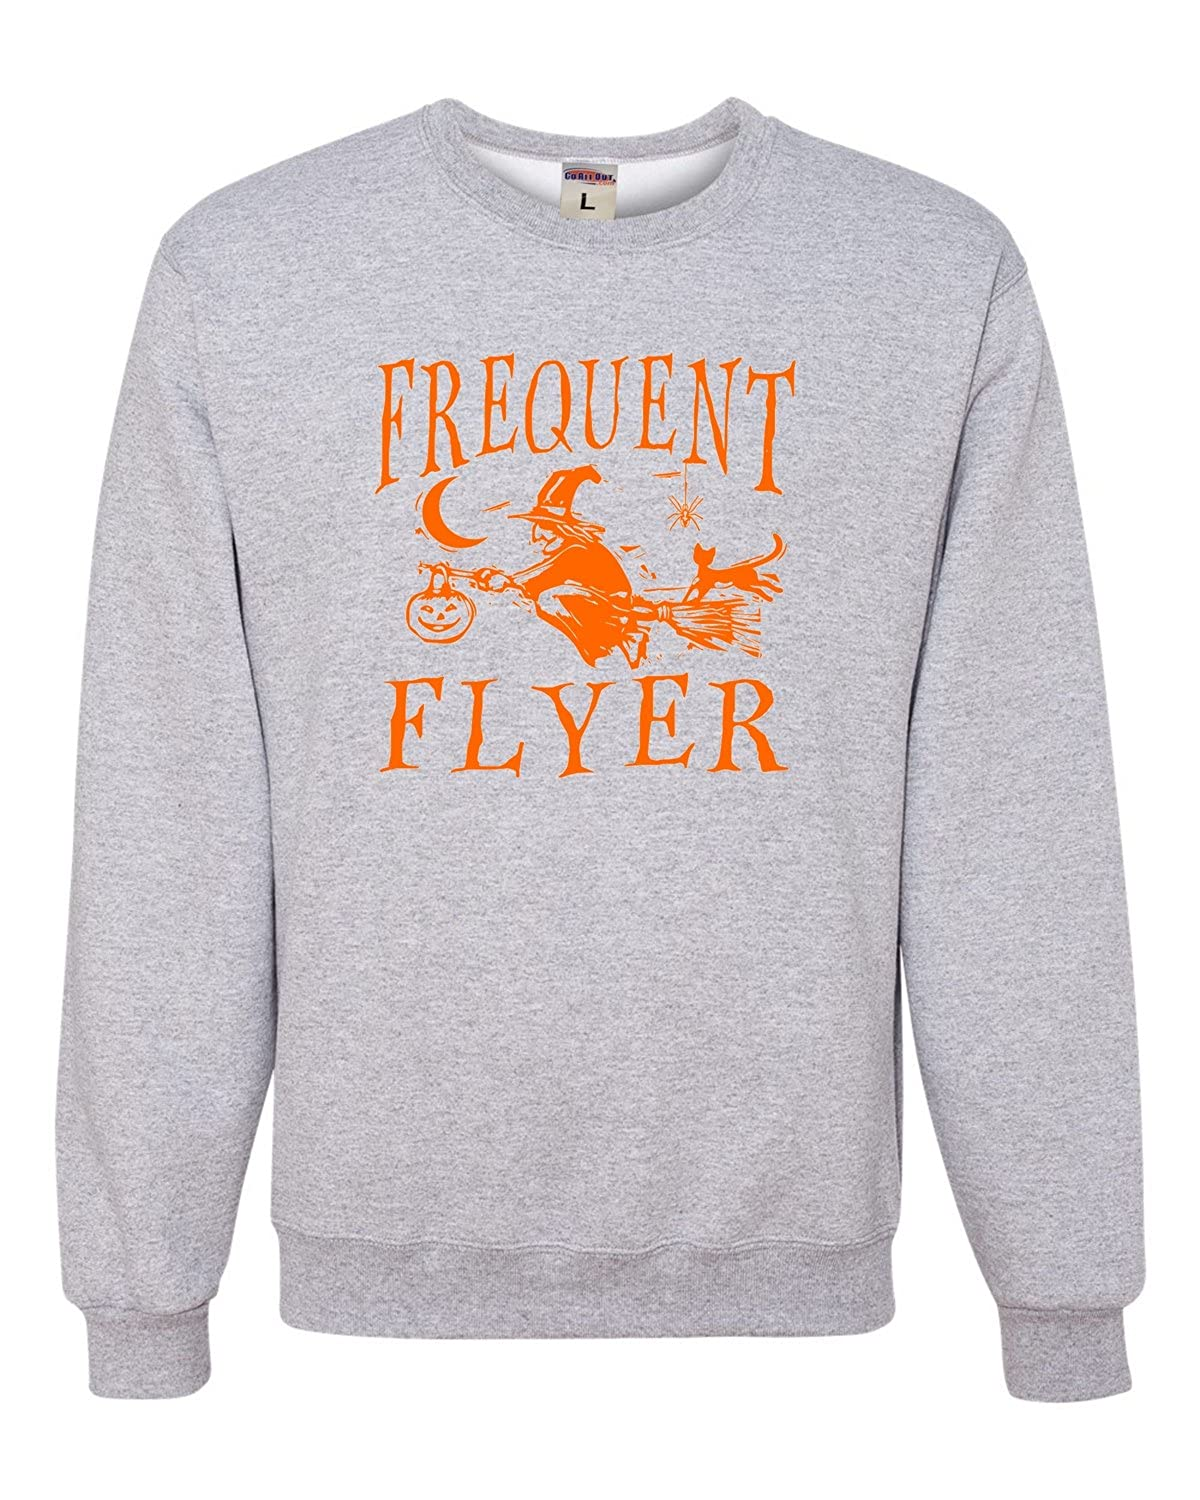 Go All Out Adult Frequent Flyer Funny Witch Halloween Sweatshirt Crewneck